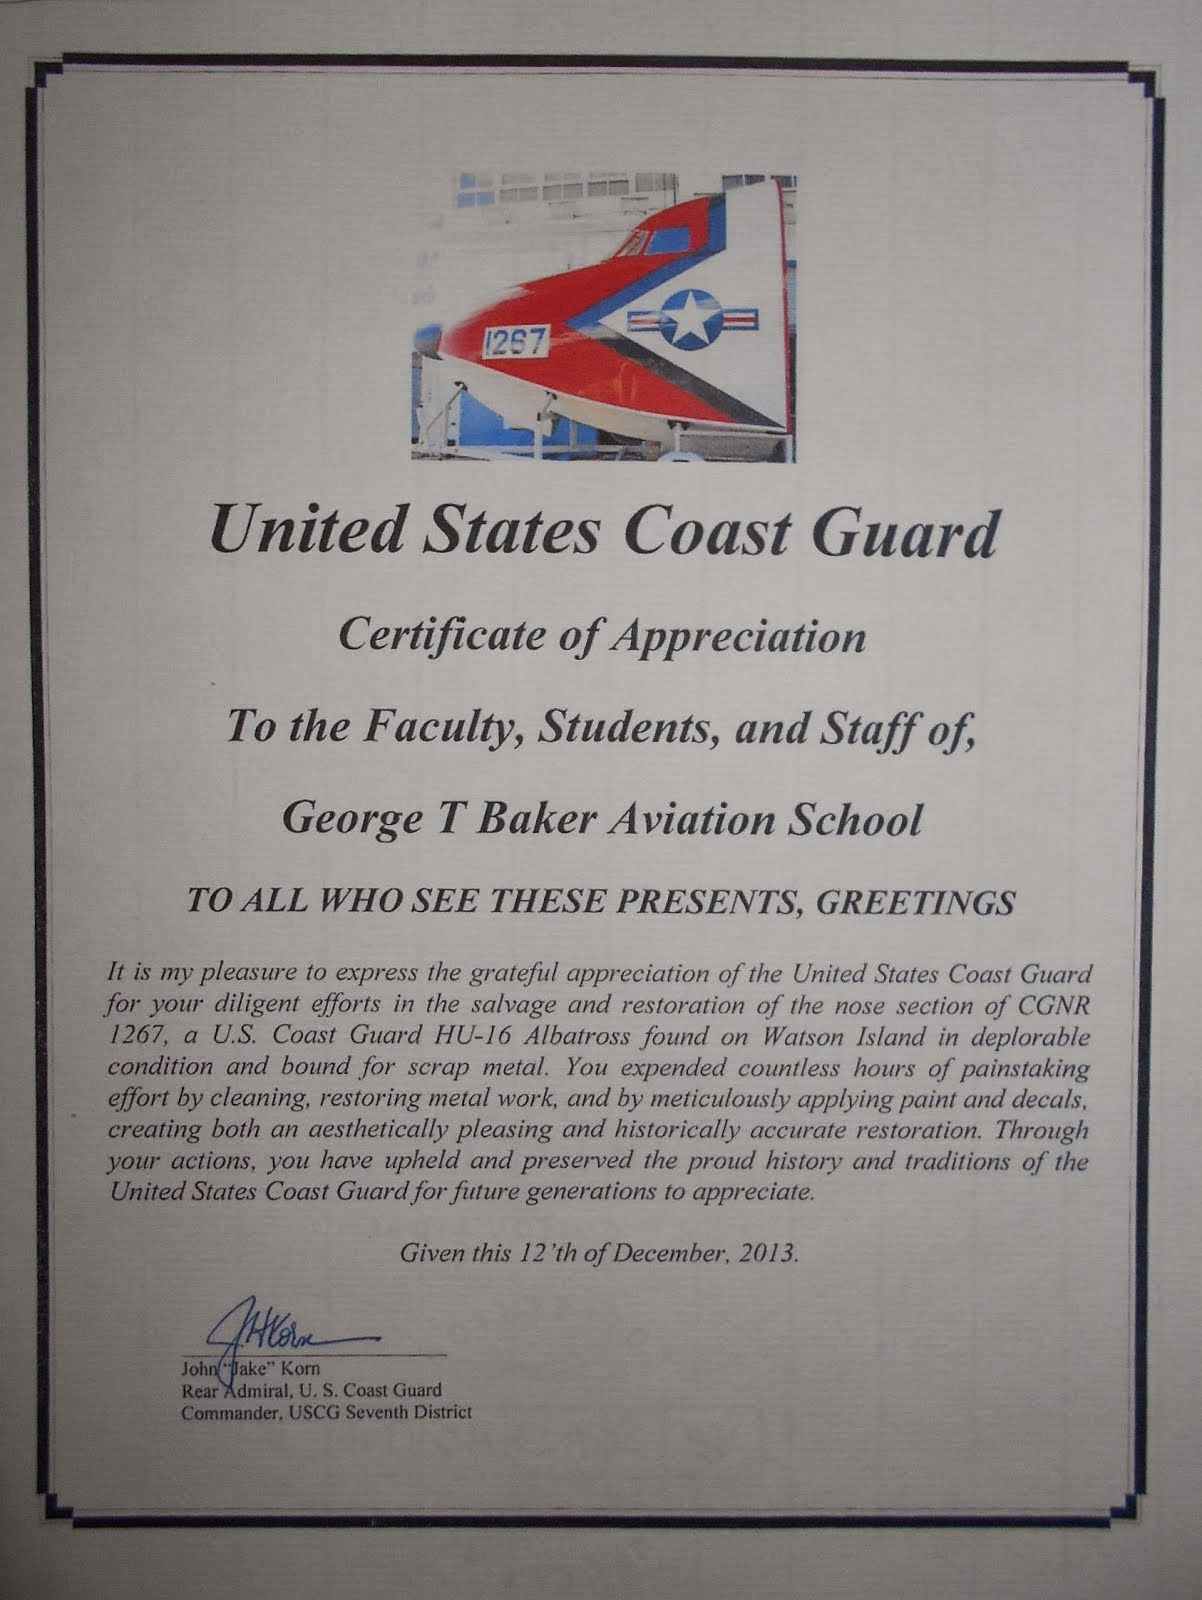 U.S.C.G Commander 7th District-Miami Letter of Appreciation